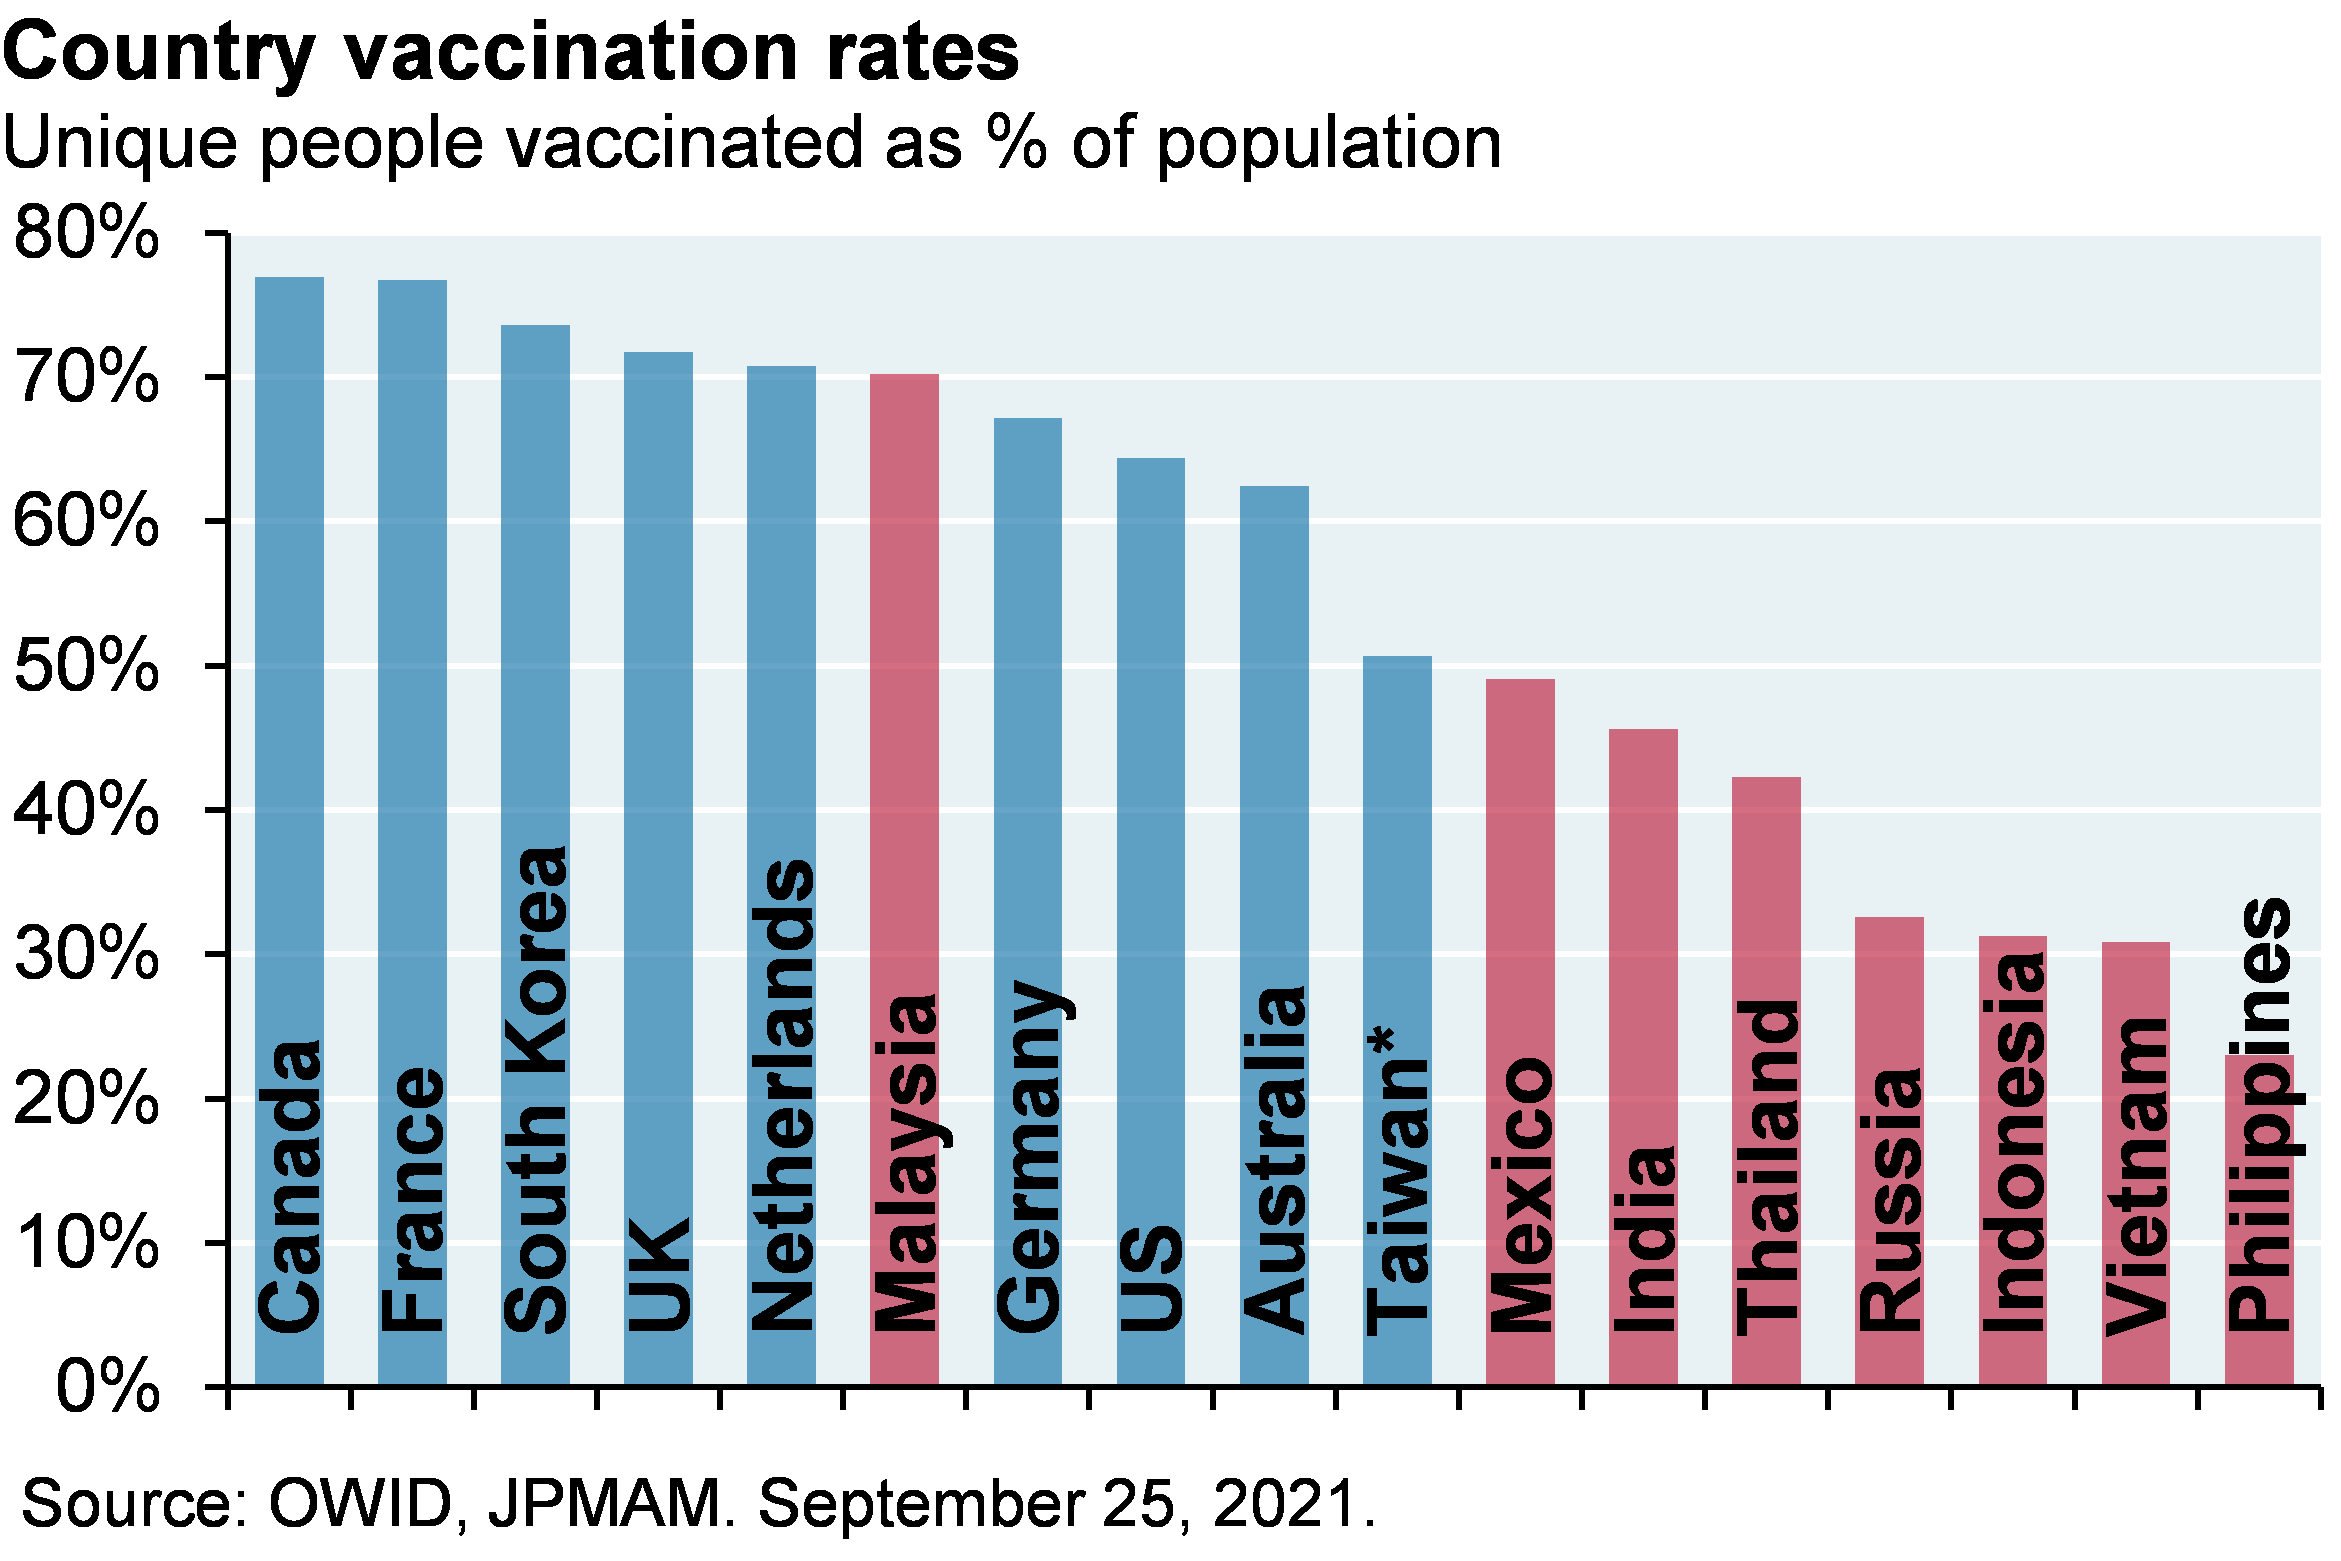 Bar chart which shows vaccination rates by country. The chart illustrates the higher level of vaccination for developed countries relative to emerging market countries. Canada, France and South Korea have vaccination rates around 80%, whereas Vietnam, Indonesia and Philippines vaccination rates are closer to 30%.